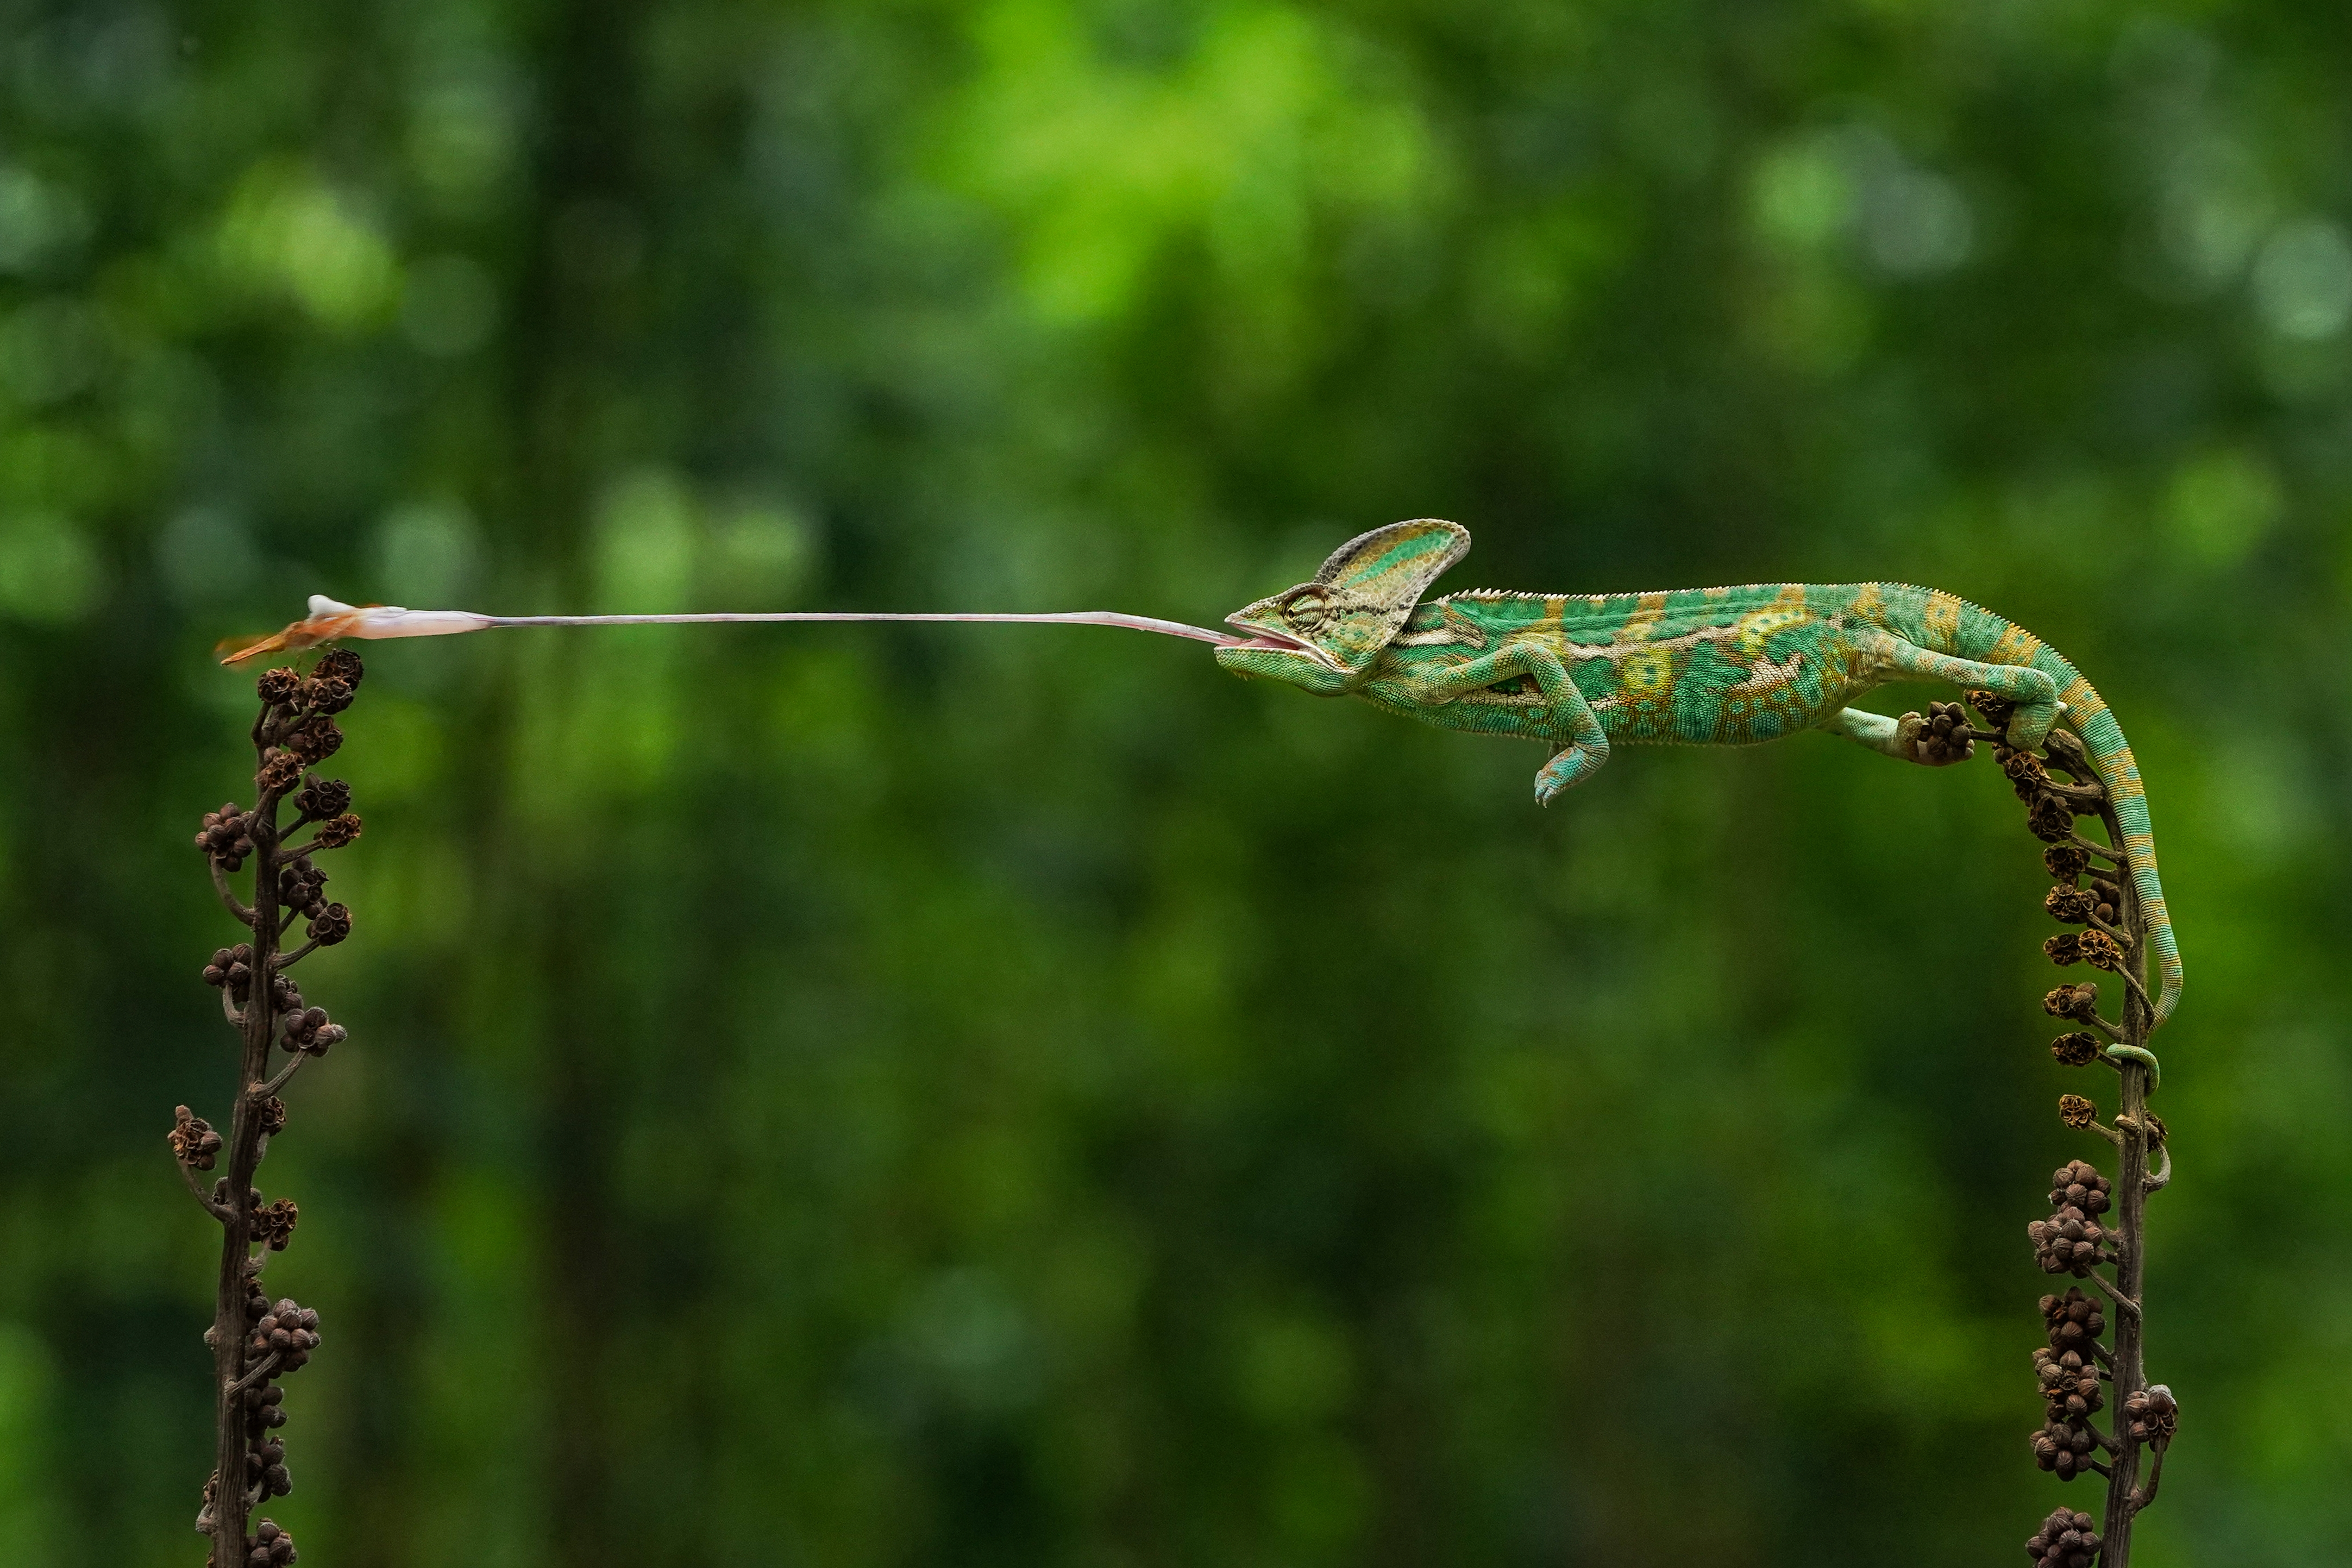 A chameleon catching a fly